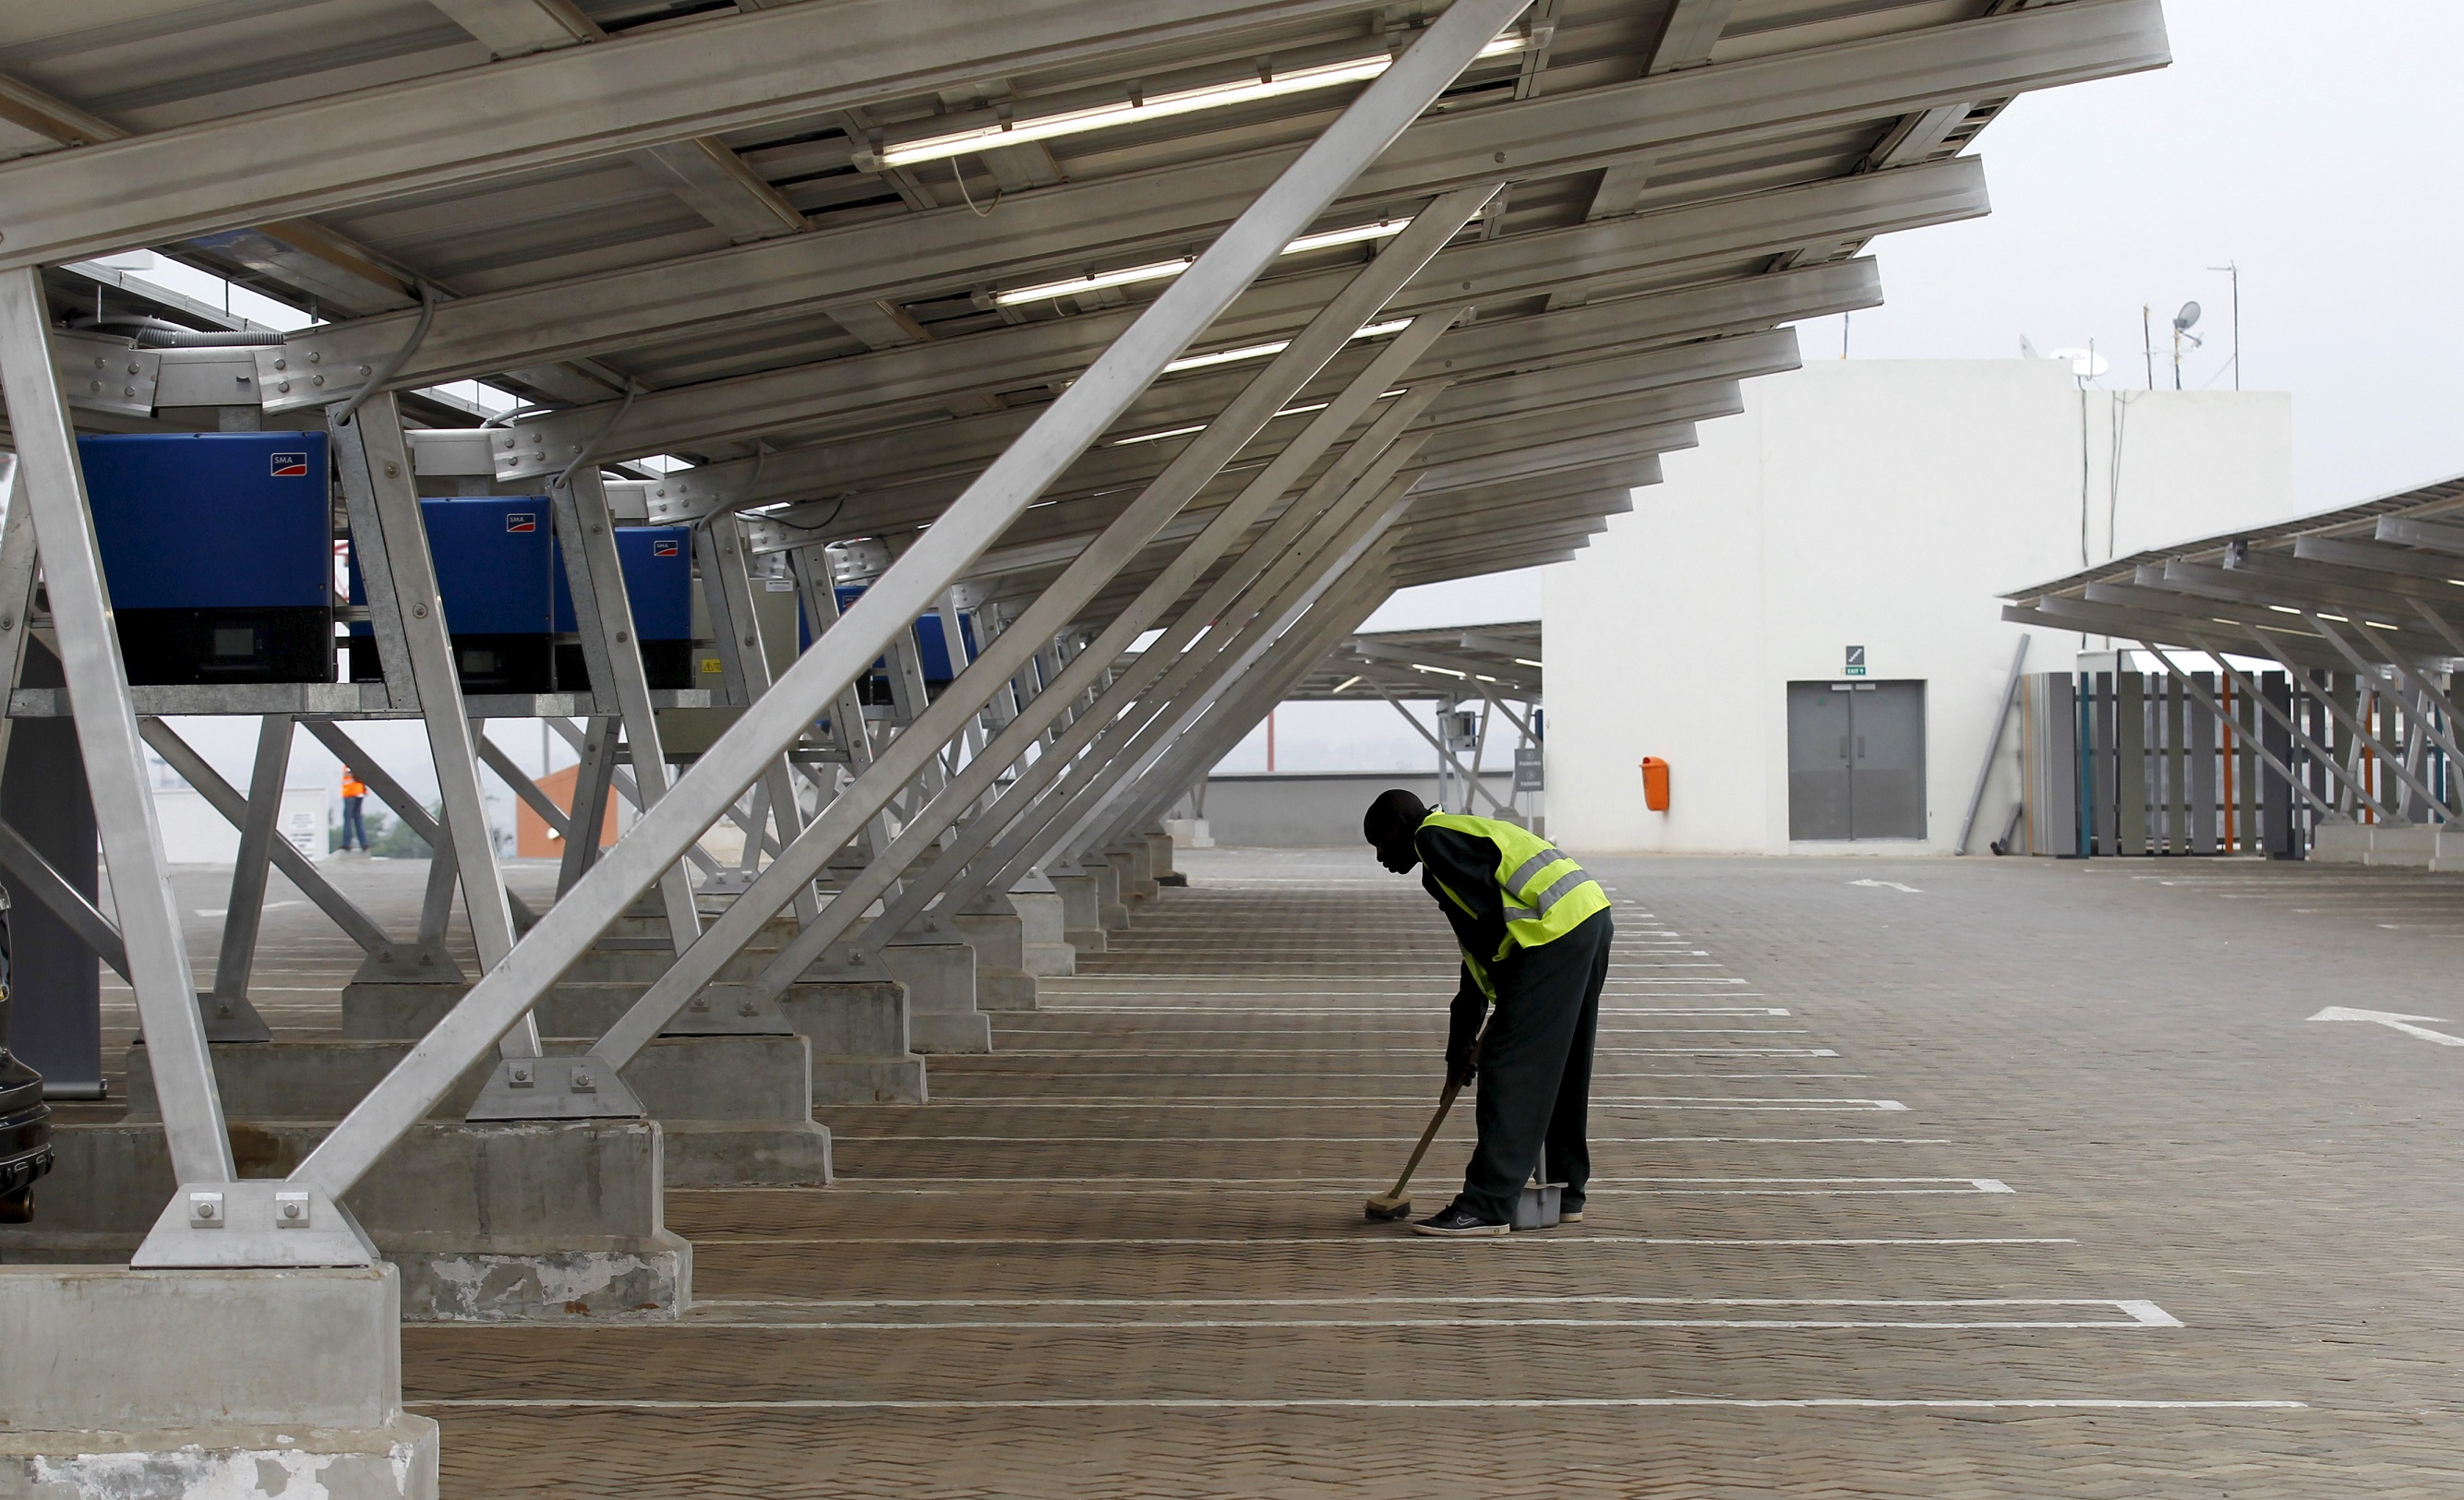 A worker sweeps the floor under solar panels which provide shade for vehicles at a solar carport at the Garden City shopping mall in Kenya's capital Nairobi, September 15, 2015. The Africa's largest solar carport with 3,300 solar panels will generate 1256 MWh annually and cut carbon emission by around 745 tonnes per year, according to Solarcentury and Solar Africa.  REUTERS/Thomas Mukoya - GF10000206552